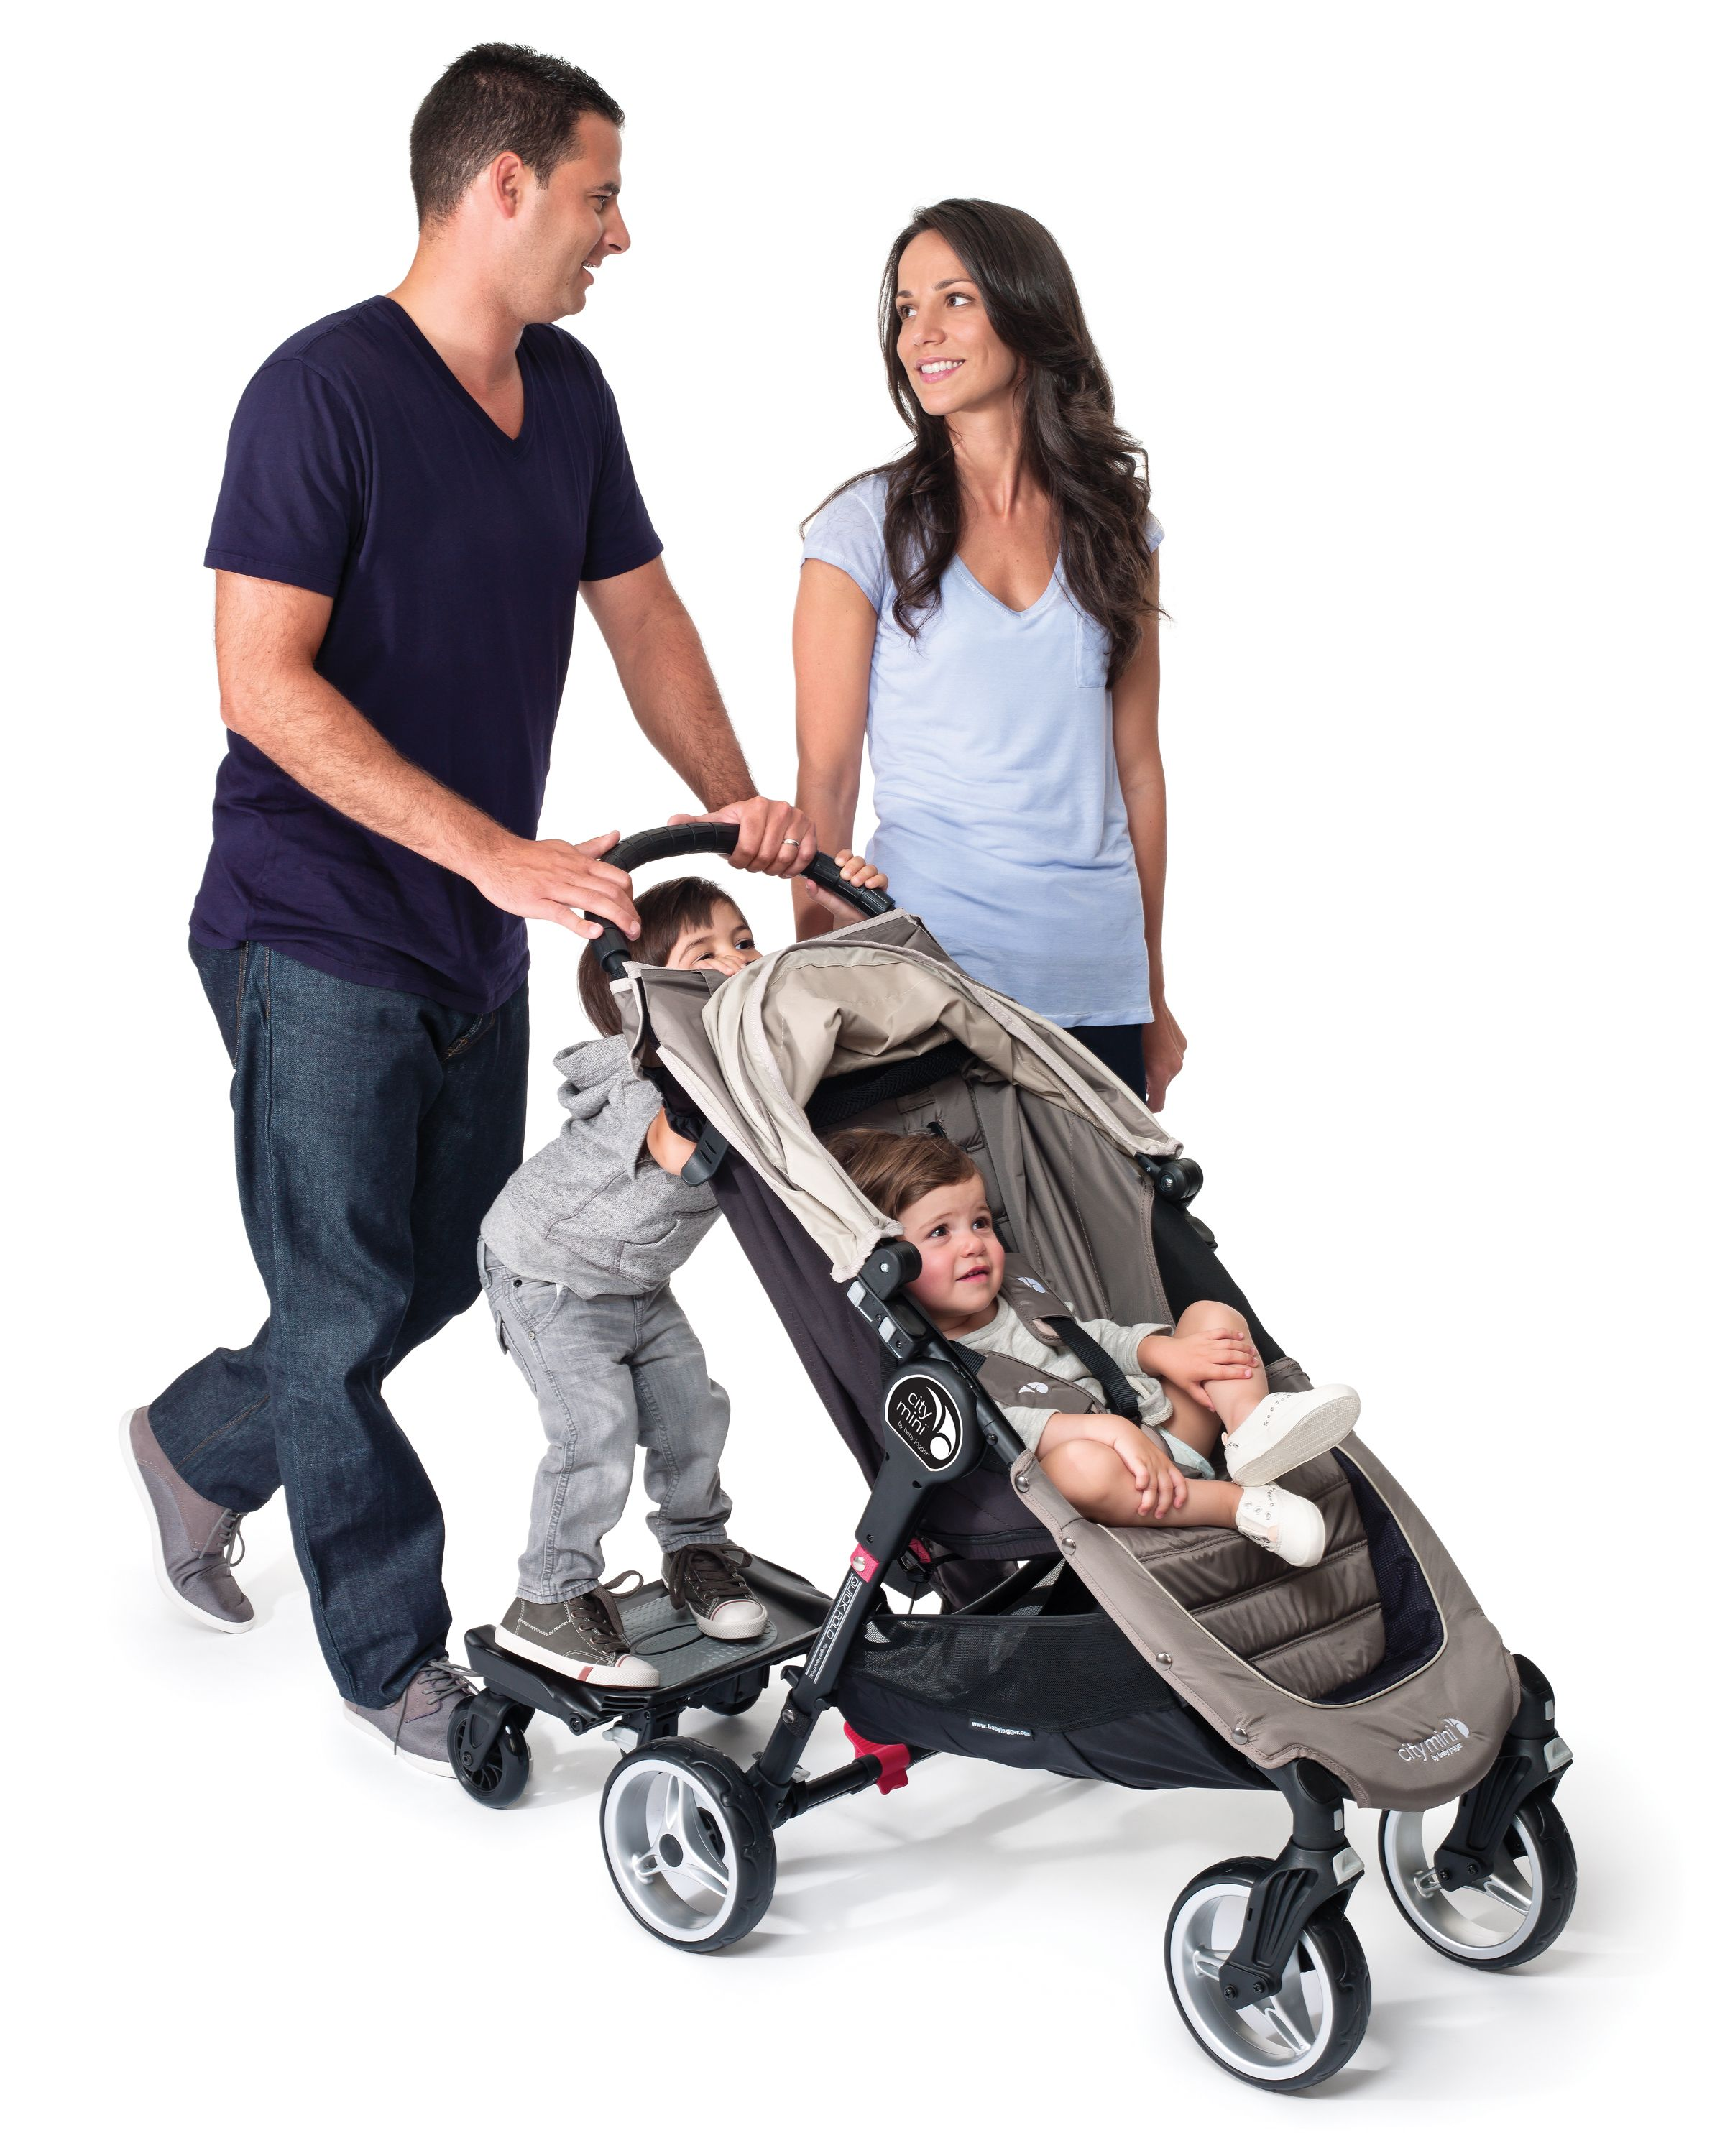 Baby Jogger Glider Board Is A Great Way To Let Your Older